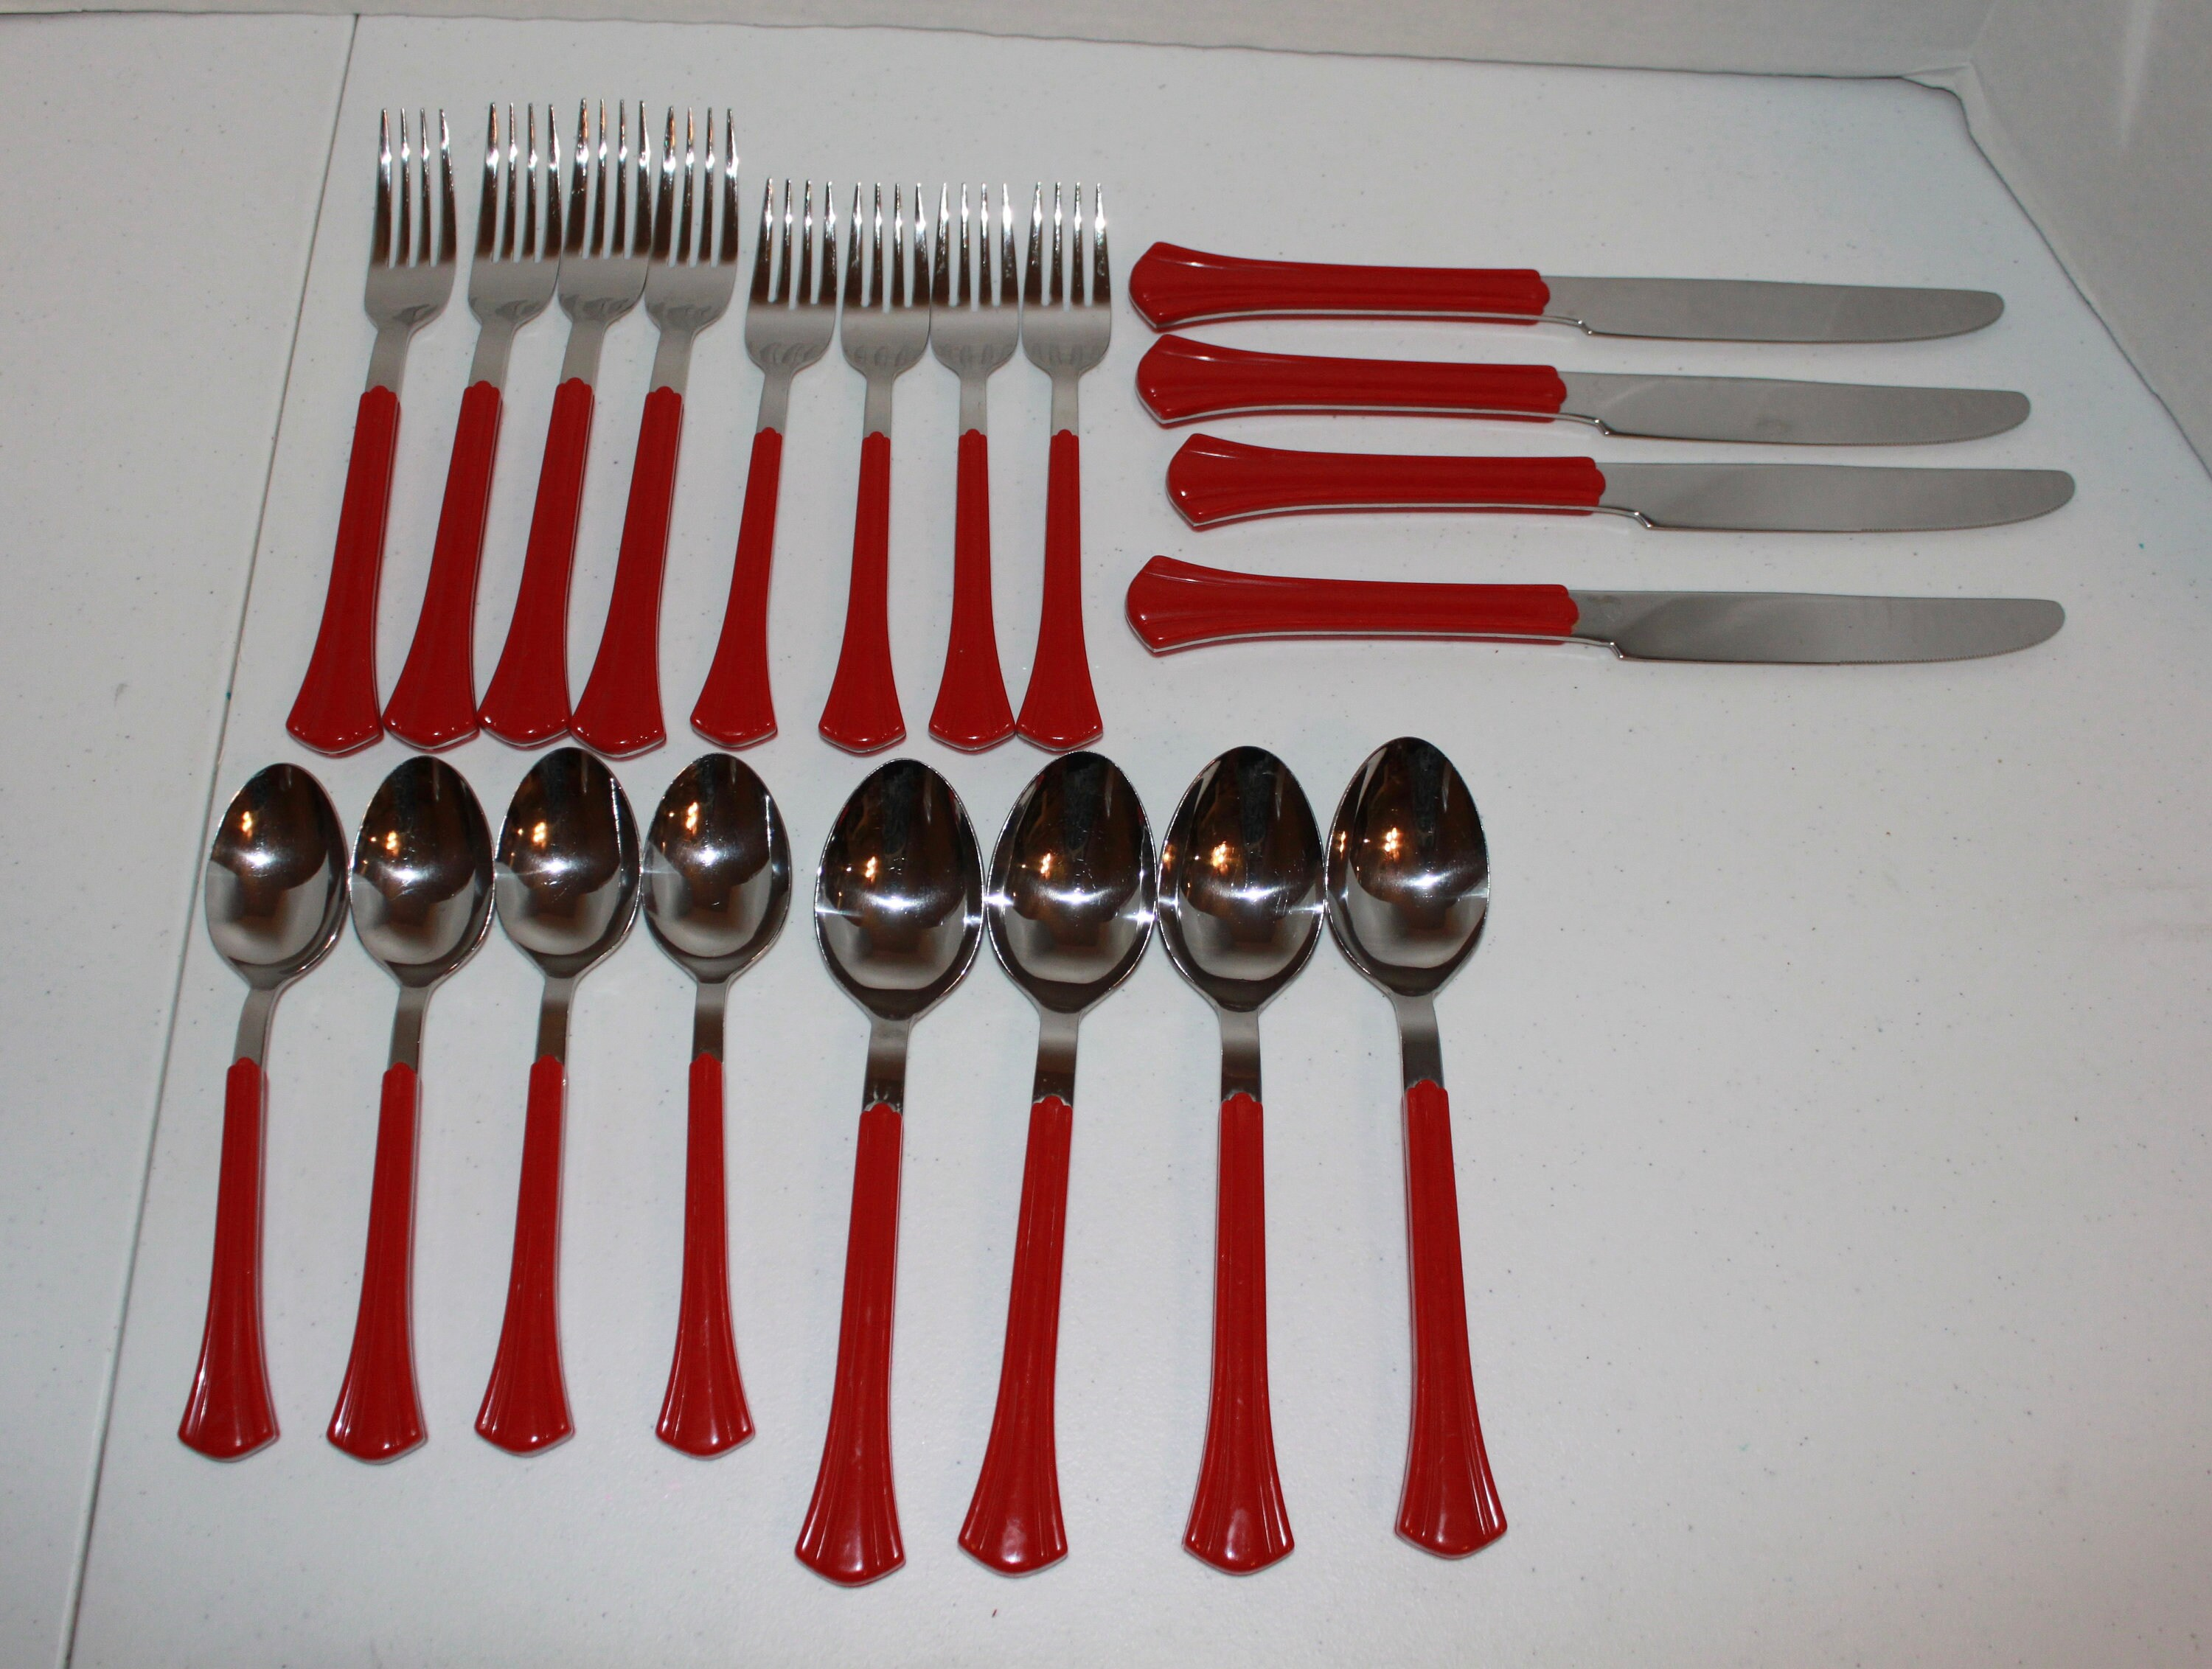 Red Handle Flatware 20 Pieces Northland Oneida Red Luminaire Flatware Flare Handle Service 4 Japan